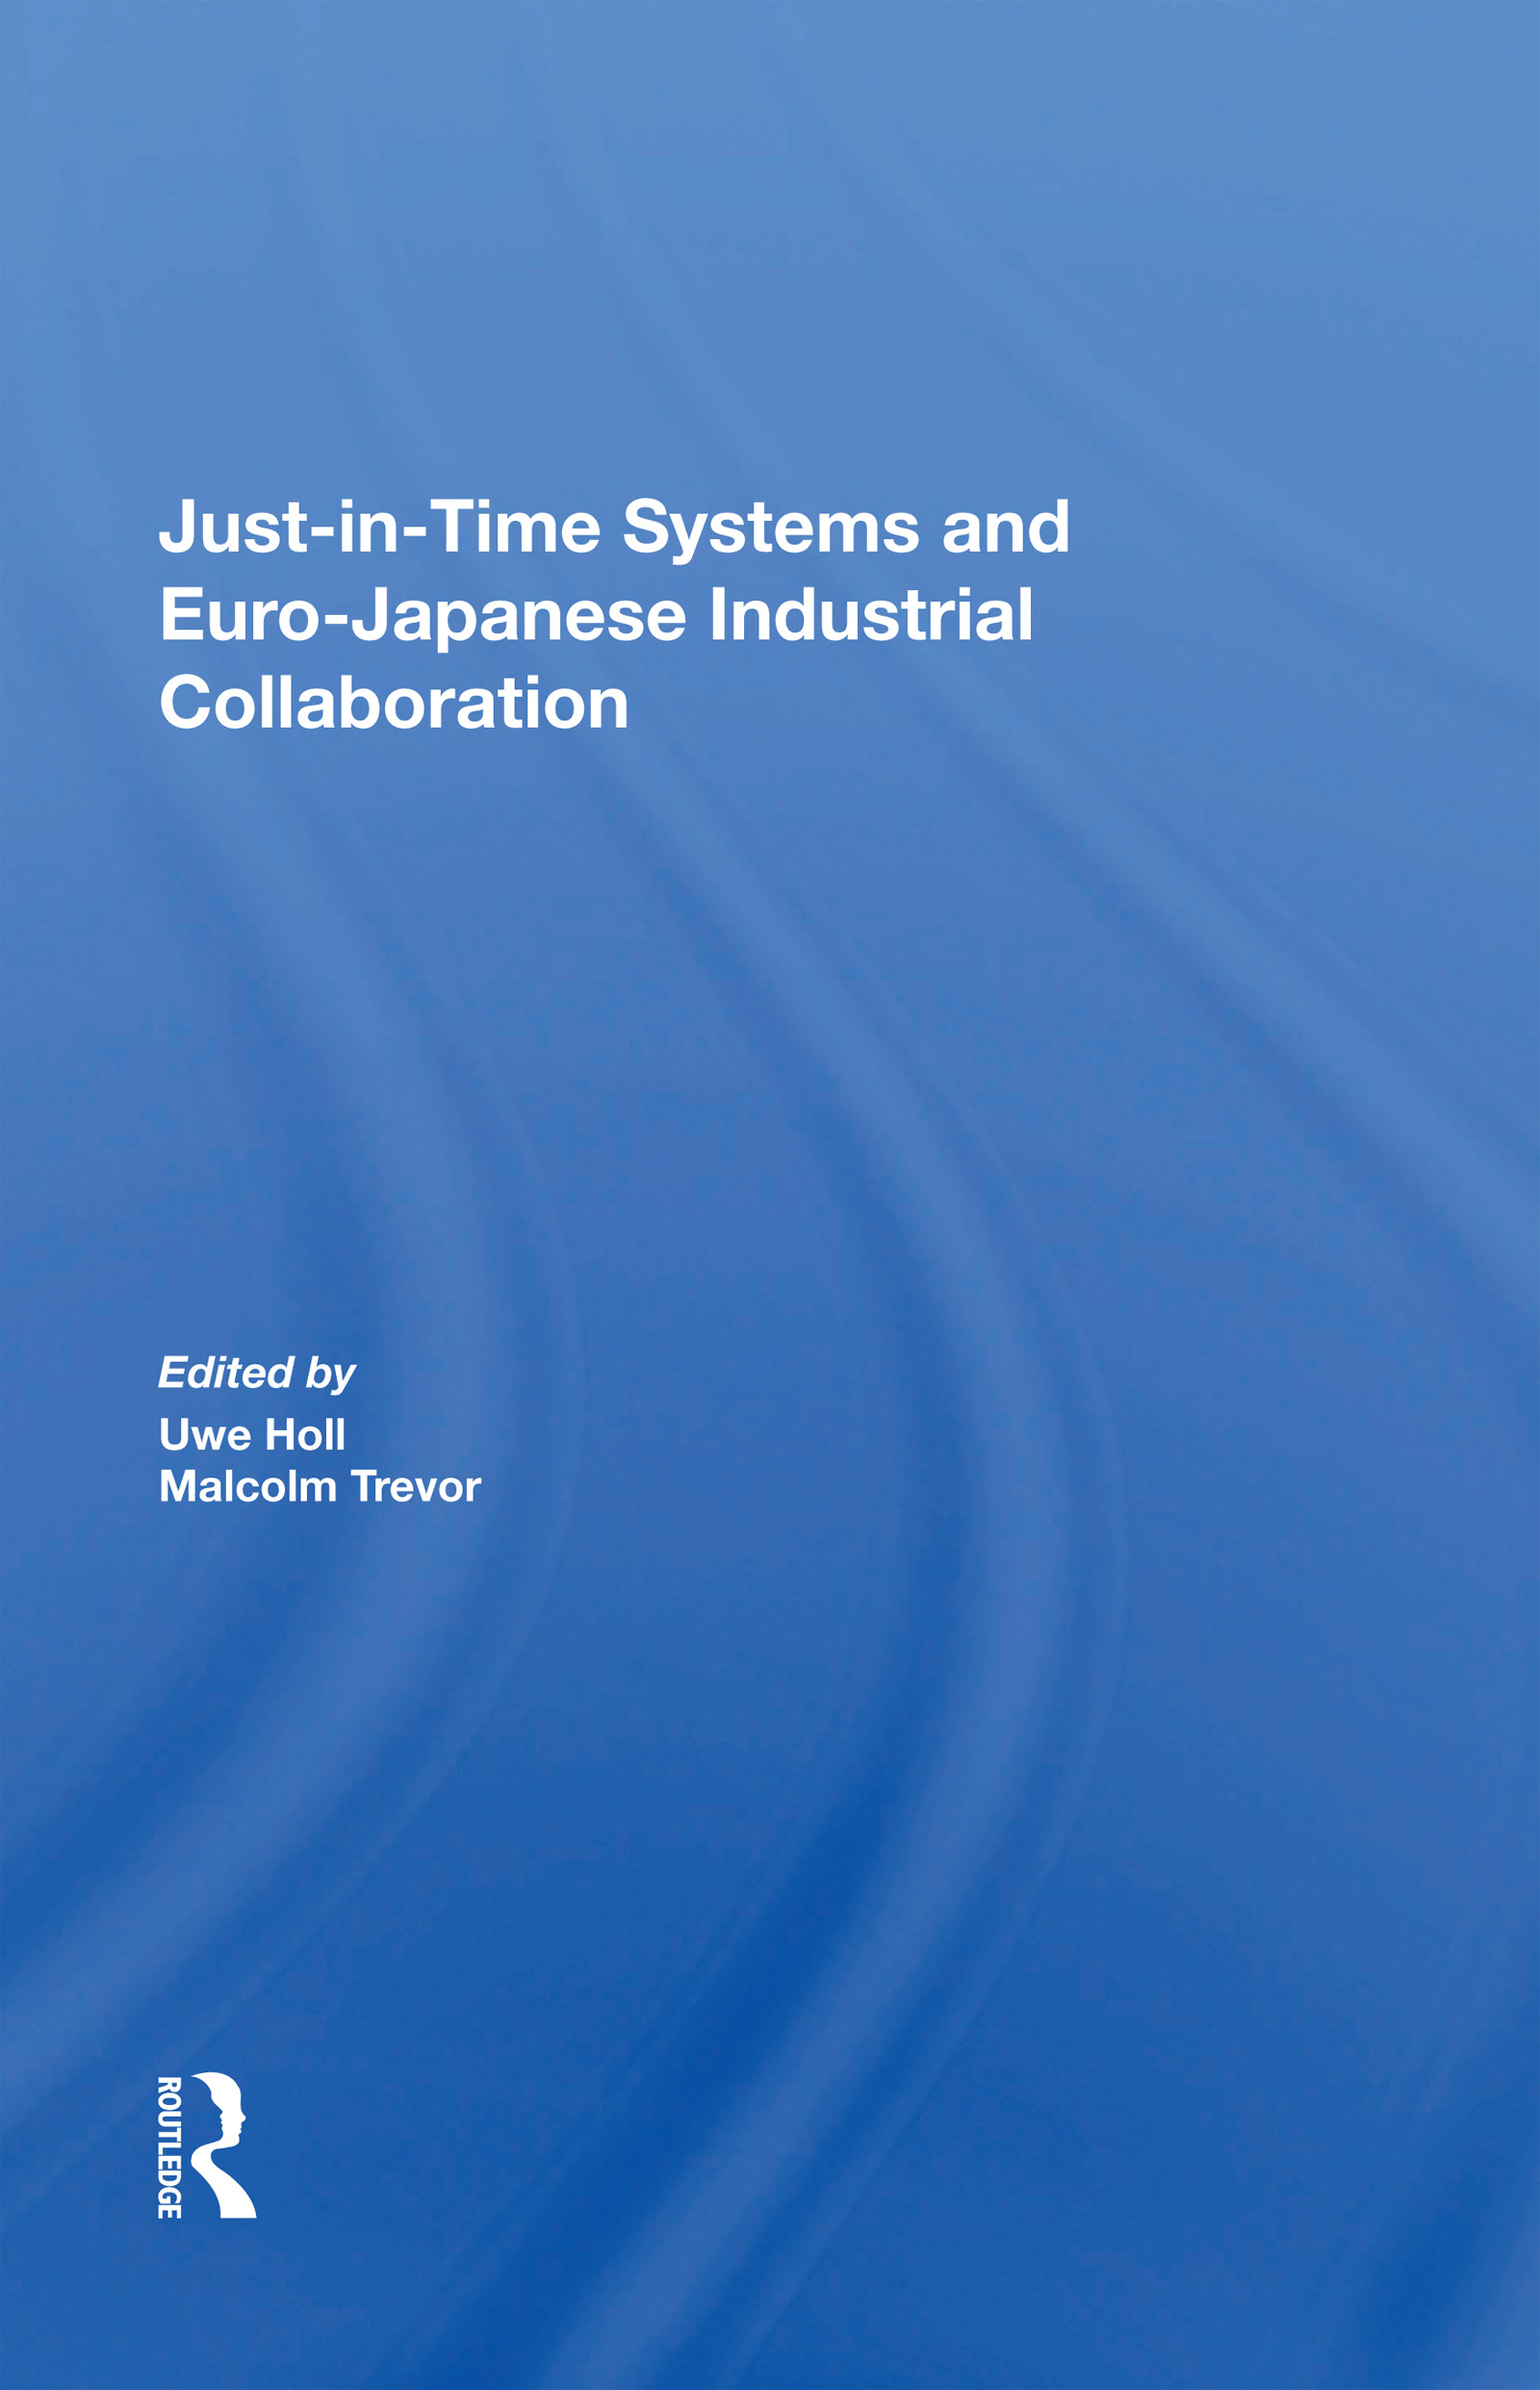 Just-in-Time Systems and Euro-Japanese Industrial Collaboration